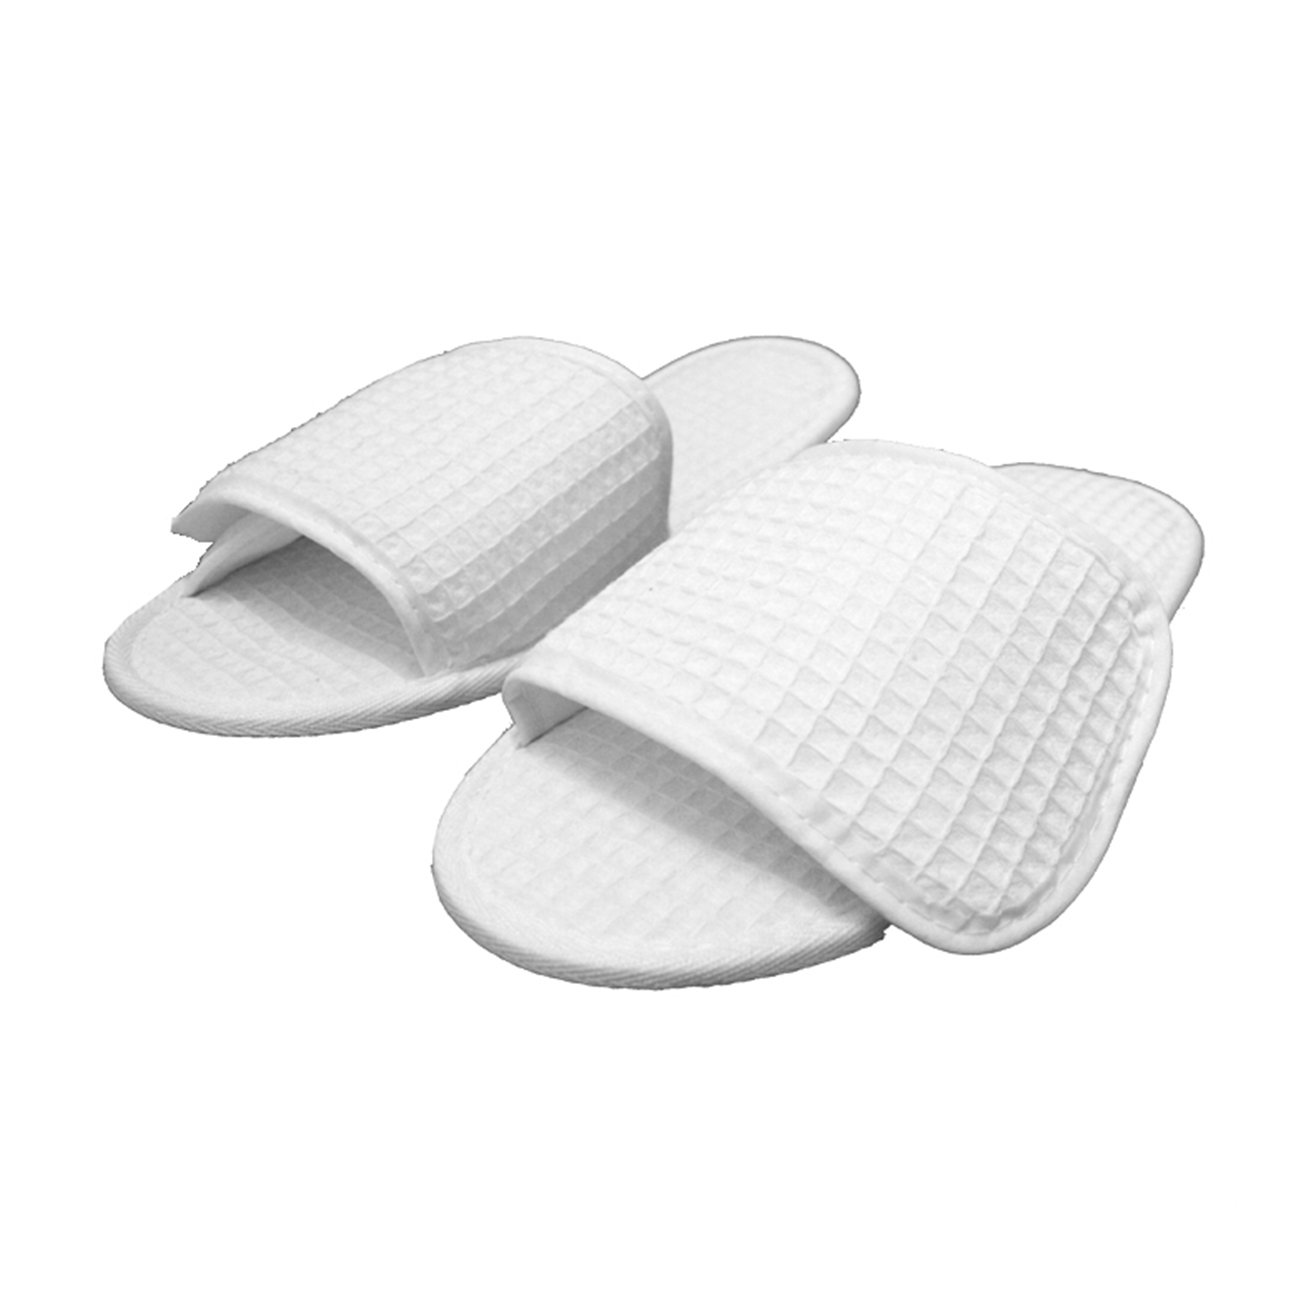 Waffle Nylon Fabric Closure Open Toe Unisex Slippers Wholesale 100 Pcs (One Size 11.5'', White)